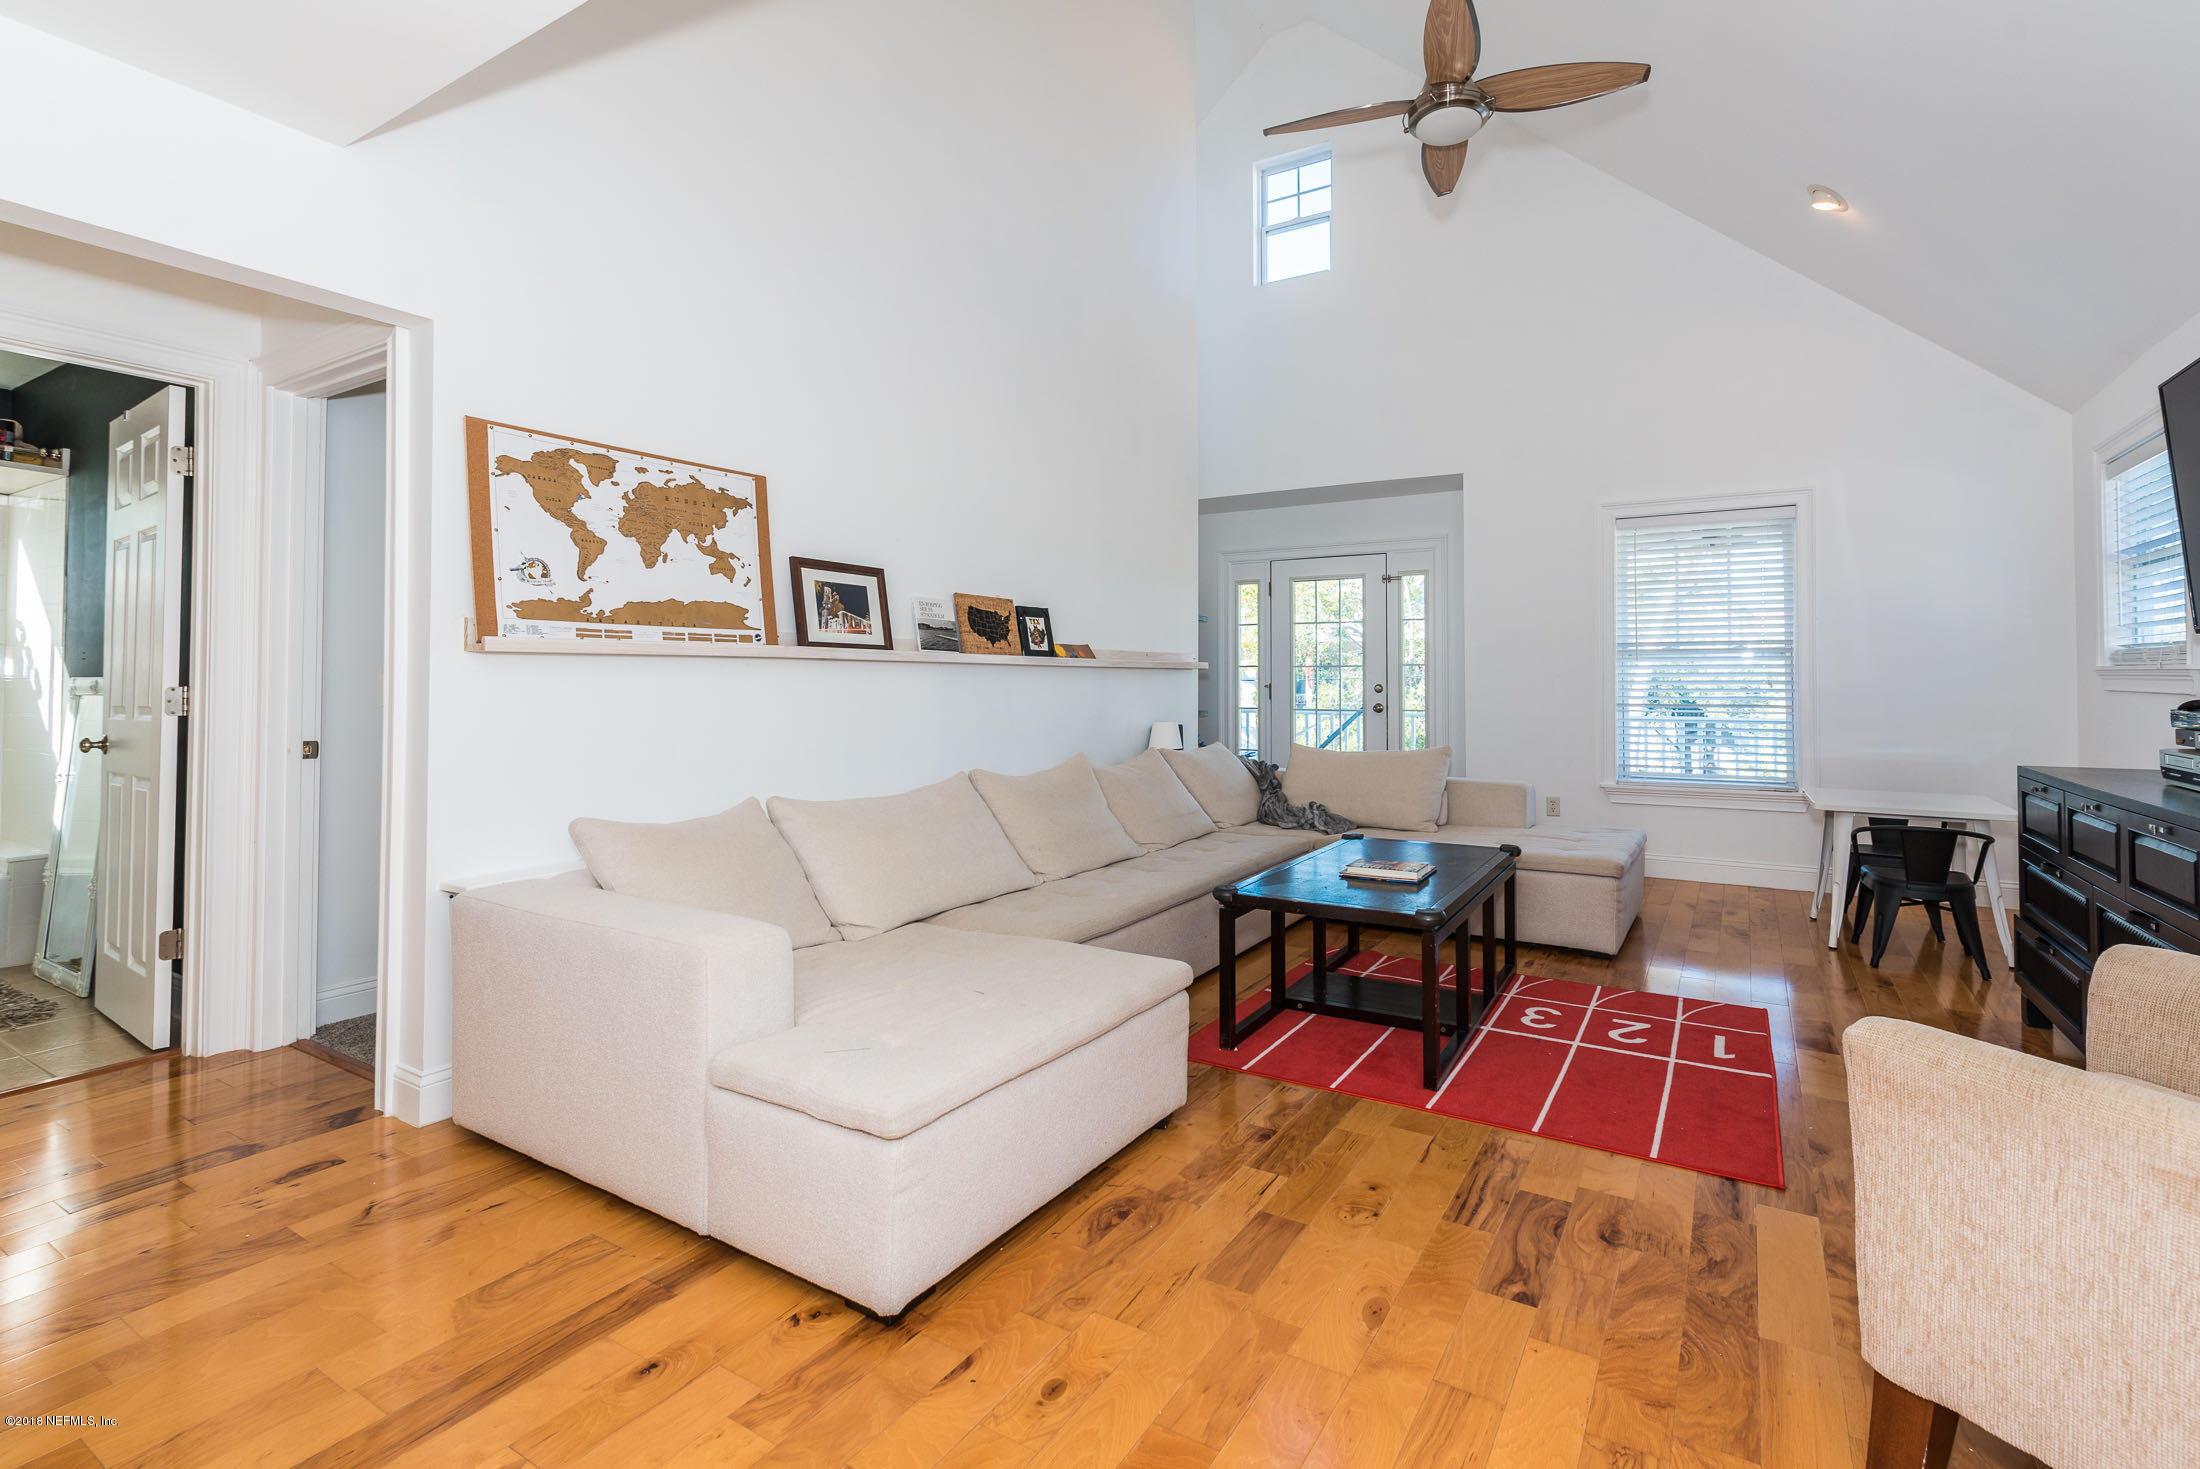 71 PARK, ST AUGUSTINE, FLORIDA 32084, 4 Bedrooms Bedrooms, ,3 BathroomsBathrooms,Residential - single family,For sale,PARK,915364